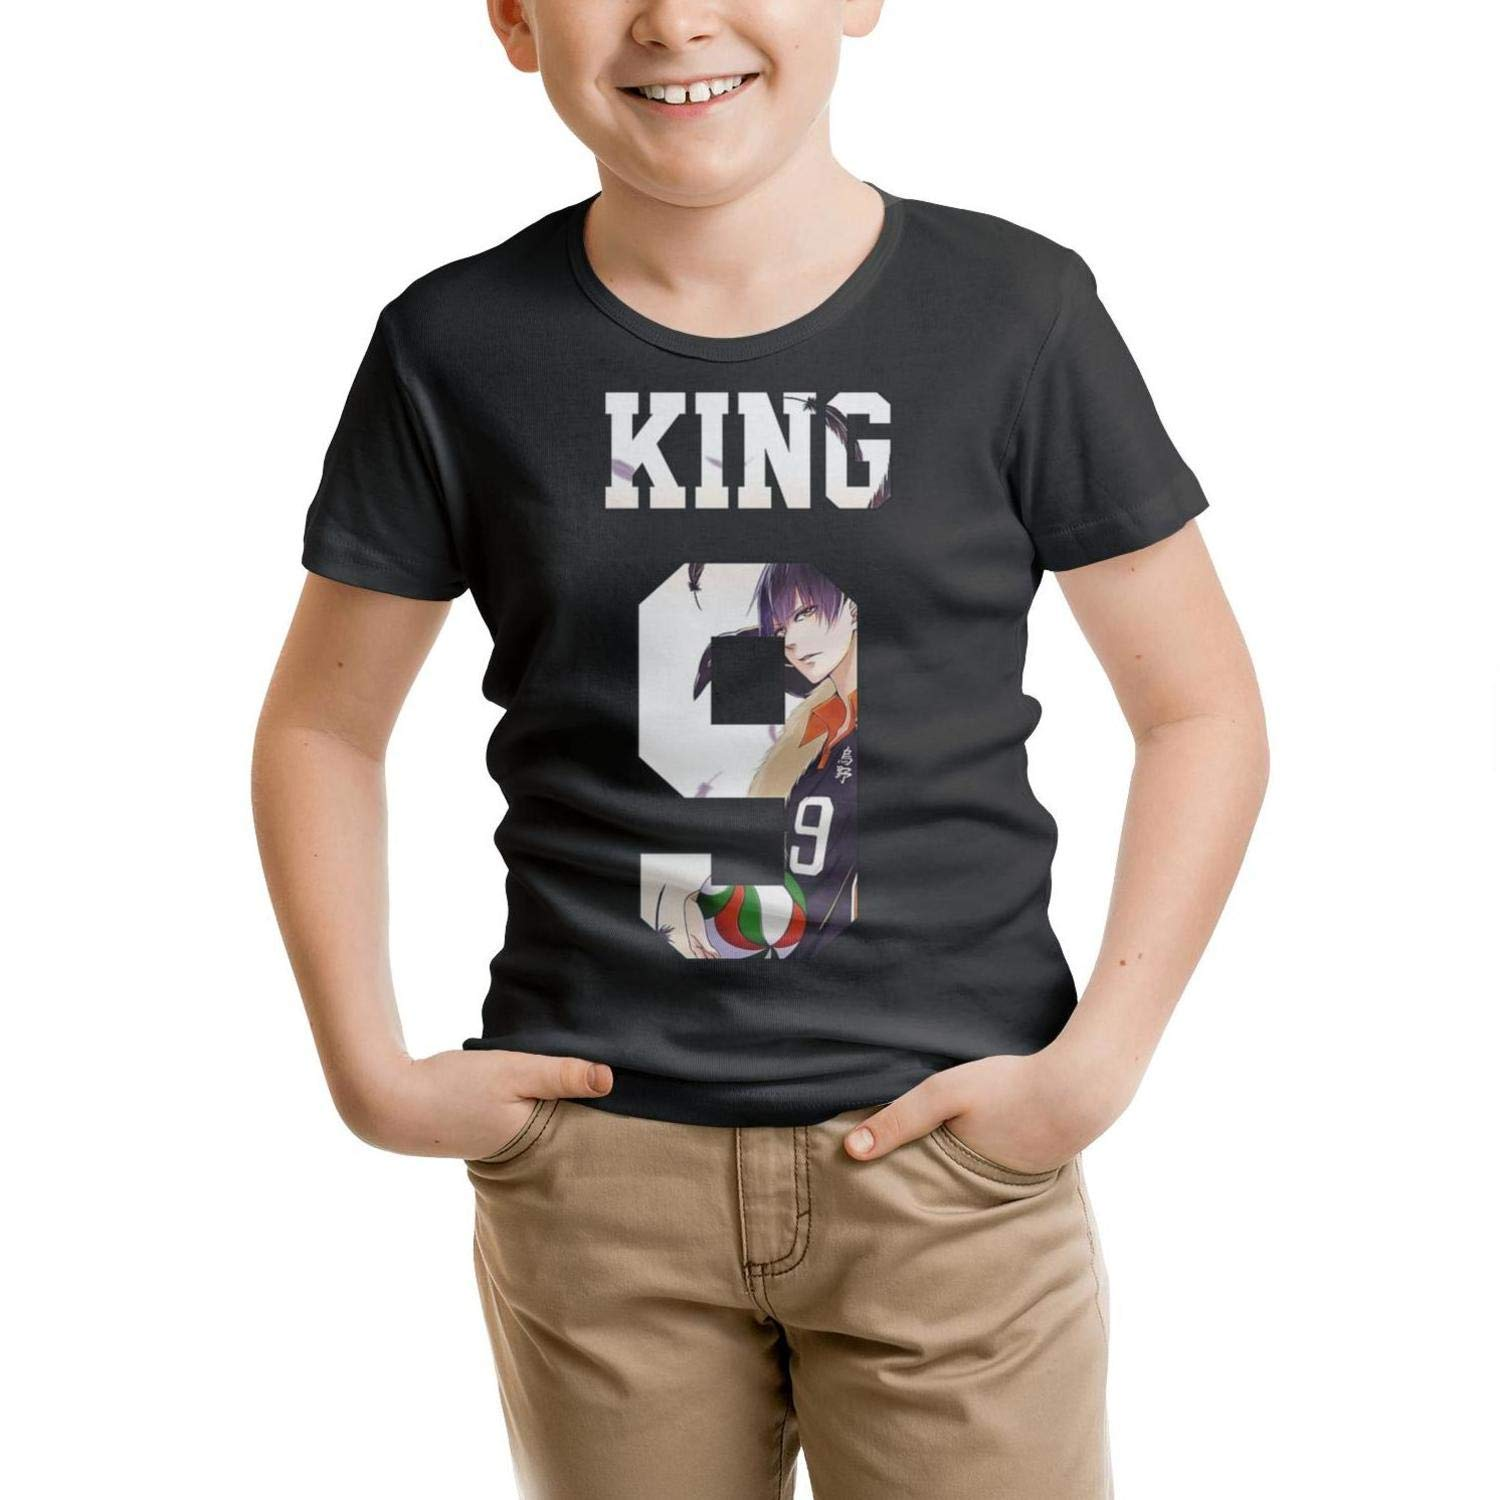 ZZYNG Short Sleeve Kids TshirtAttractive Crew Neck Family Tee Lightweight